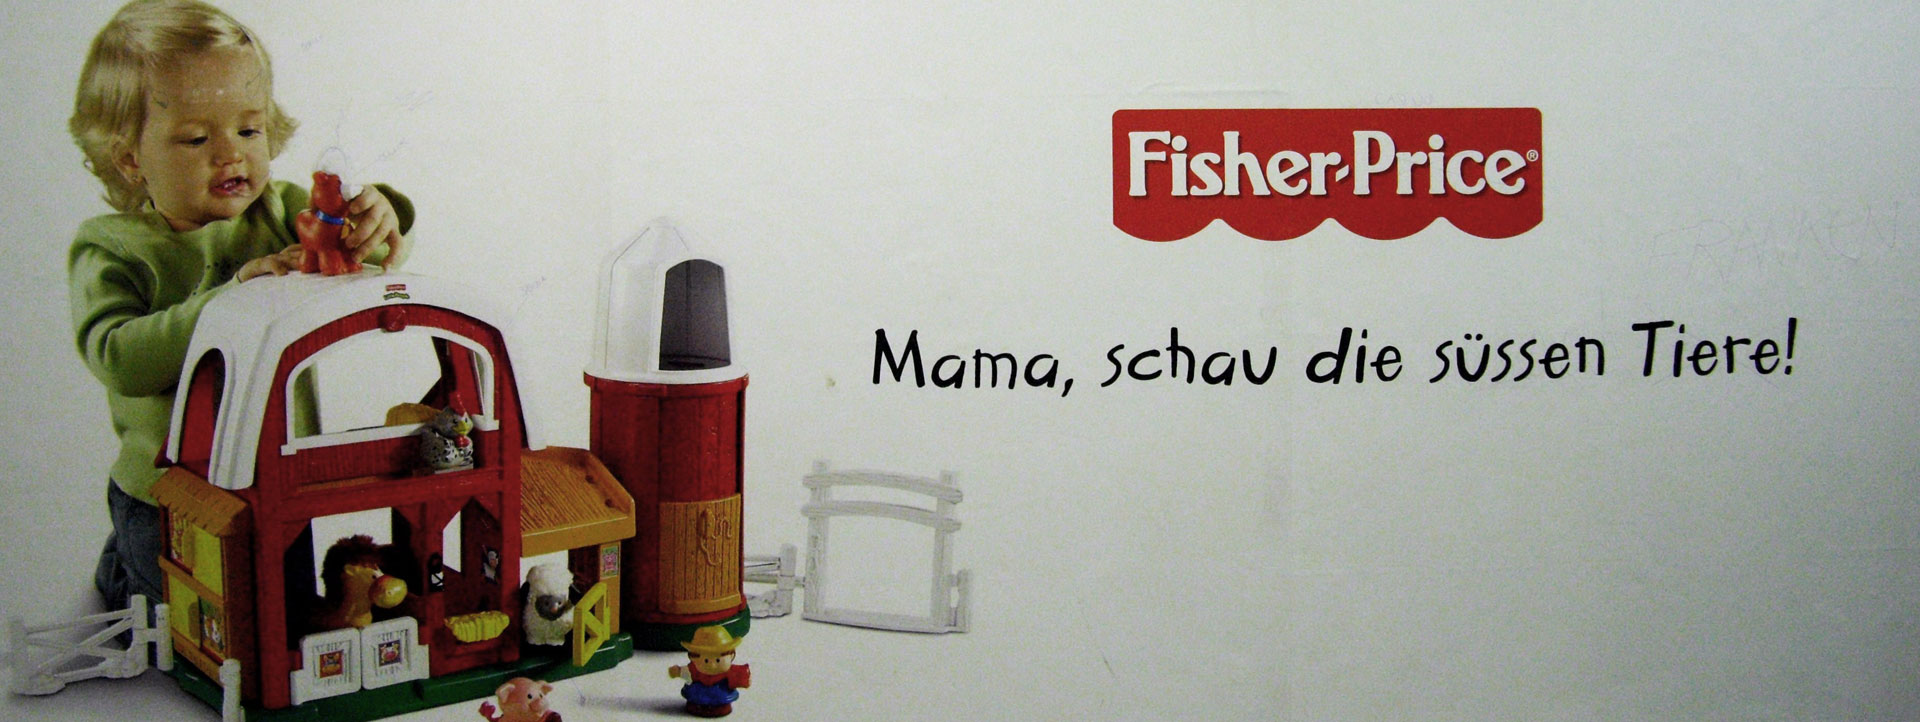 fisher_price_tiere